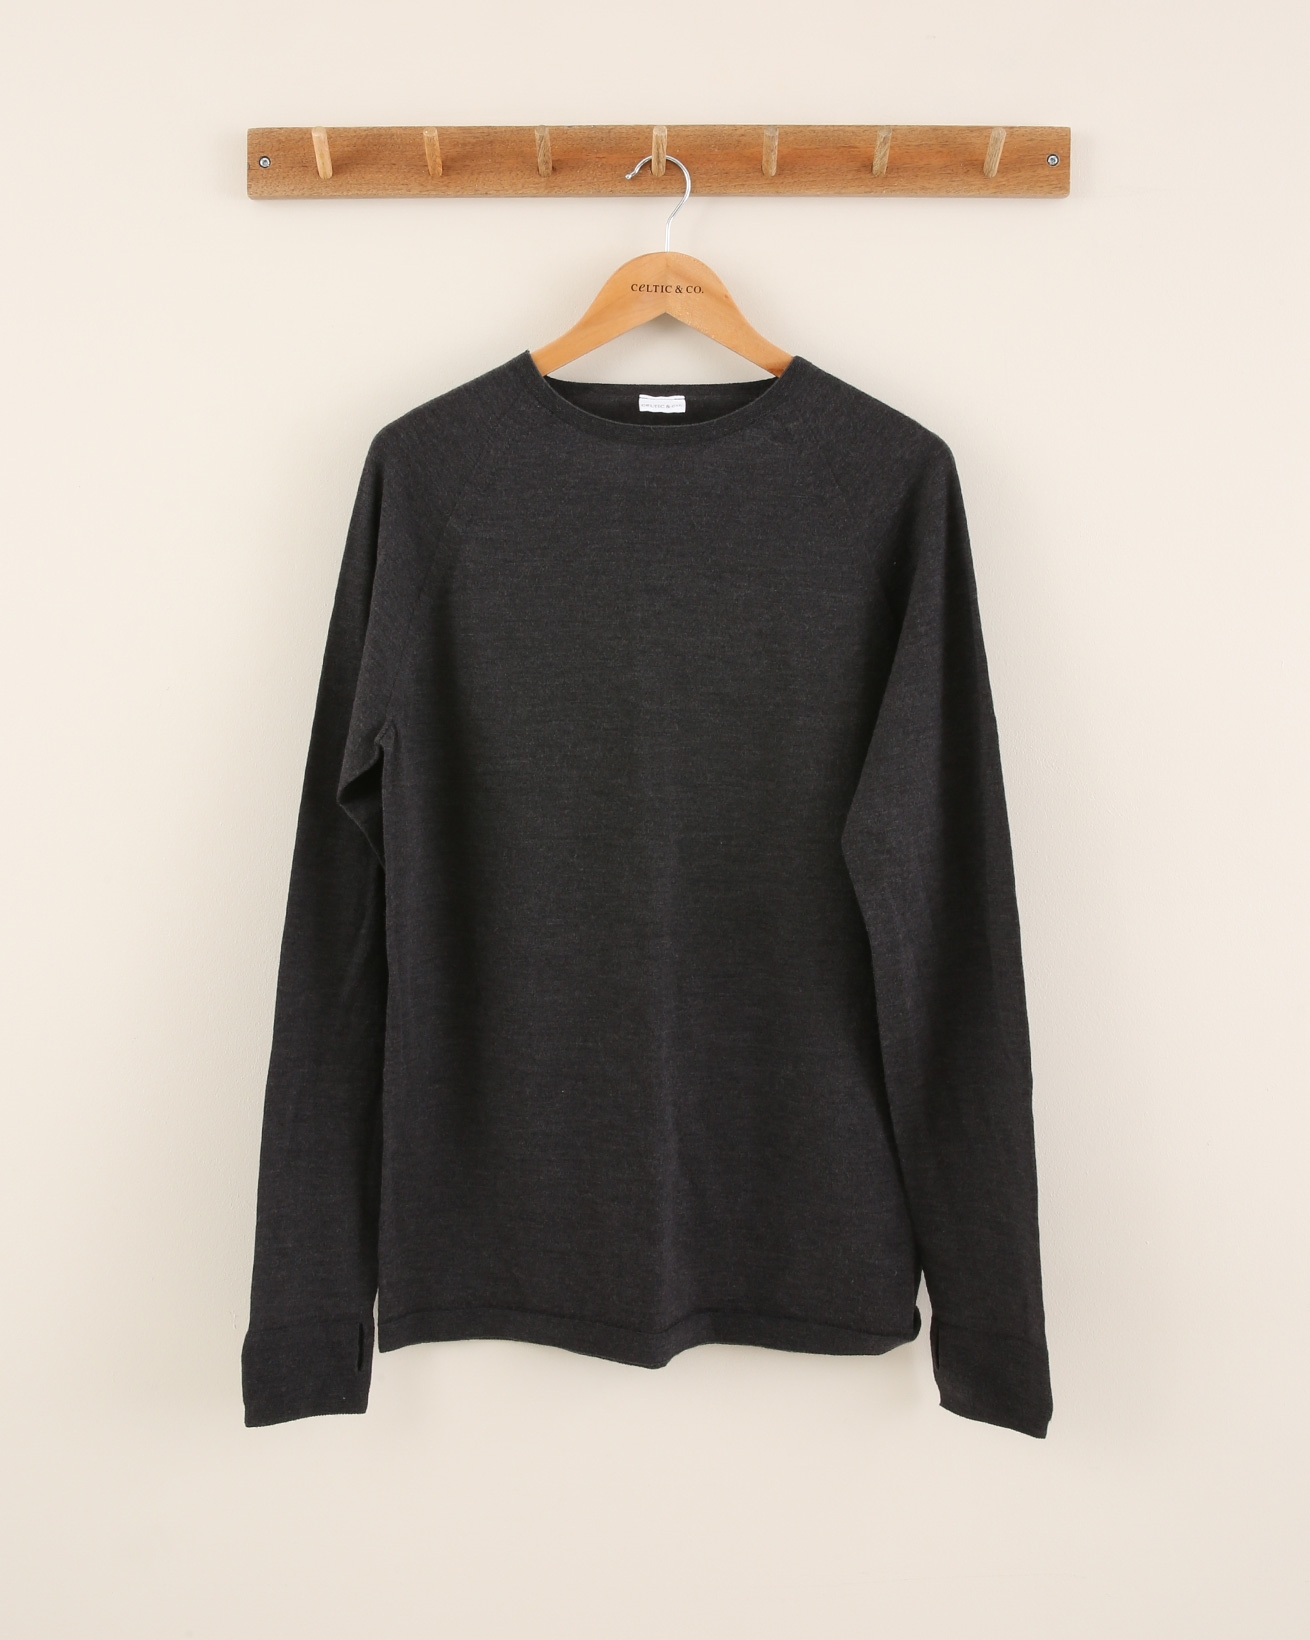 Trim Detail Merino Crew Neck - Size Large - Charcoal - 1843